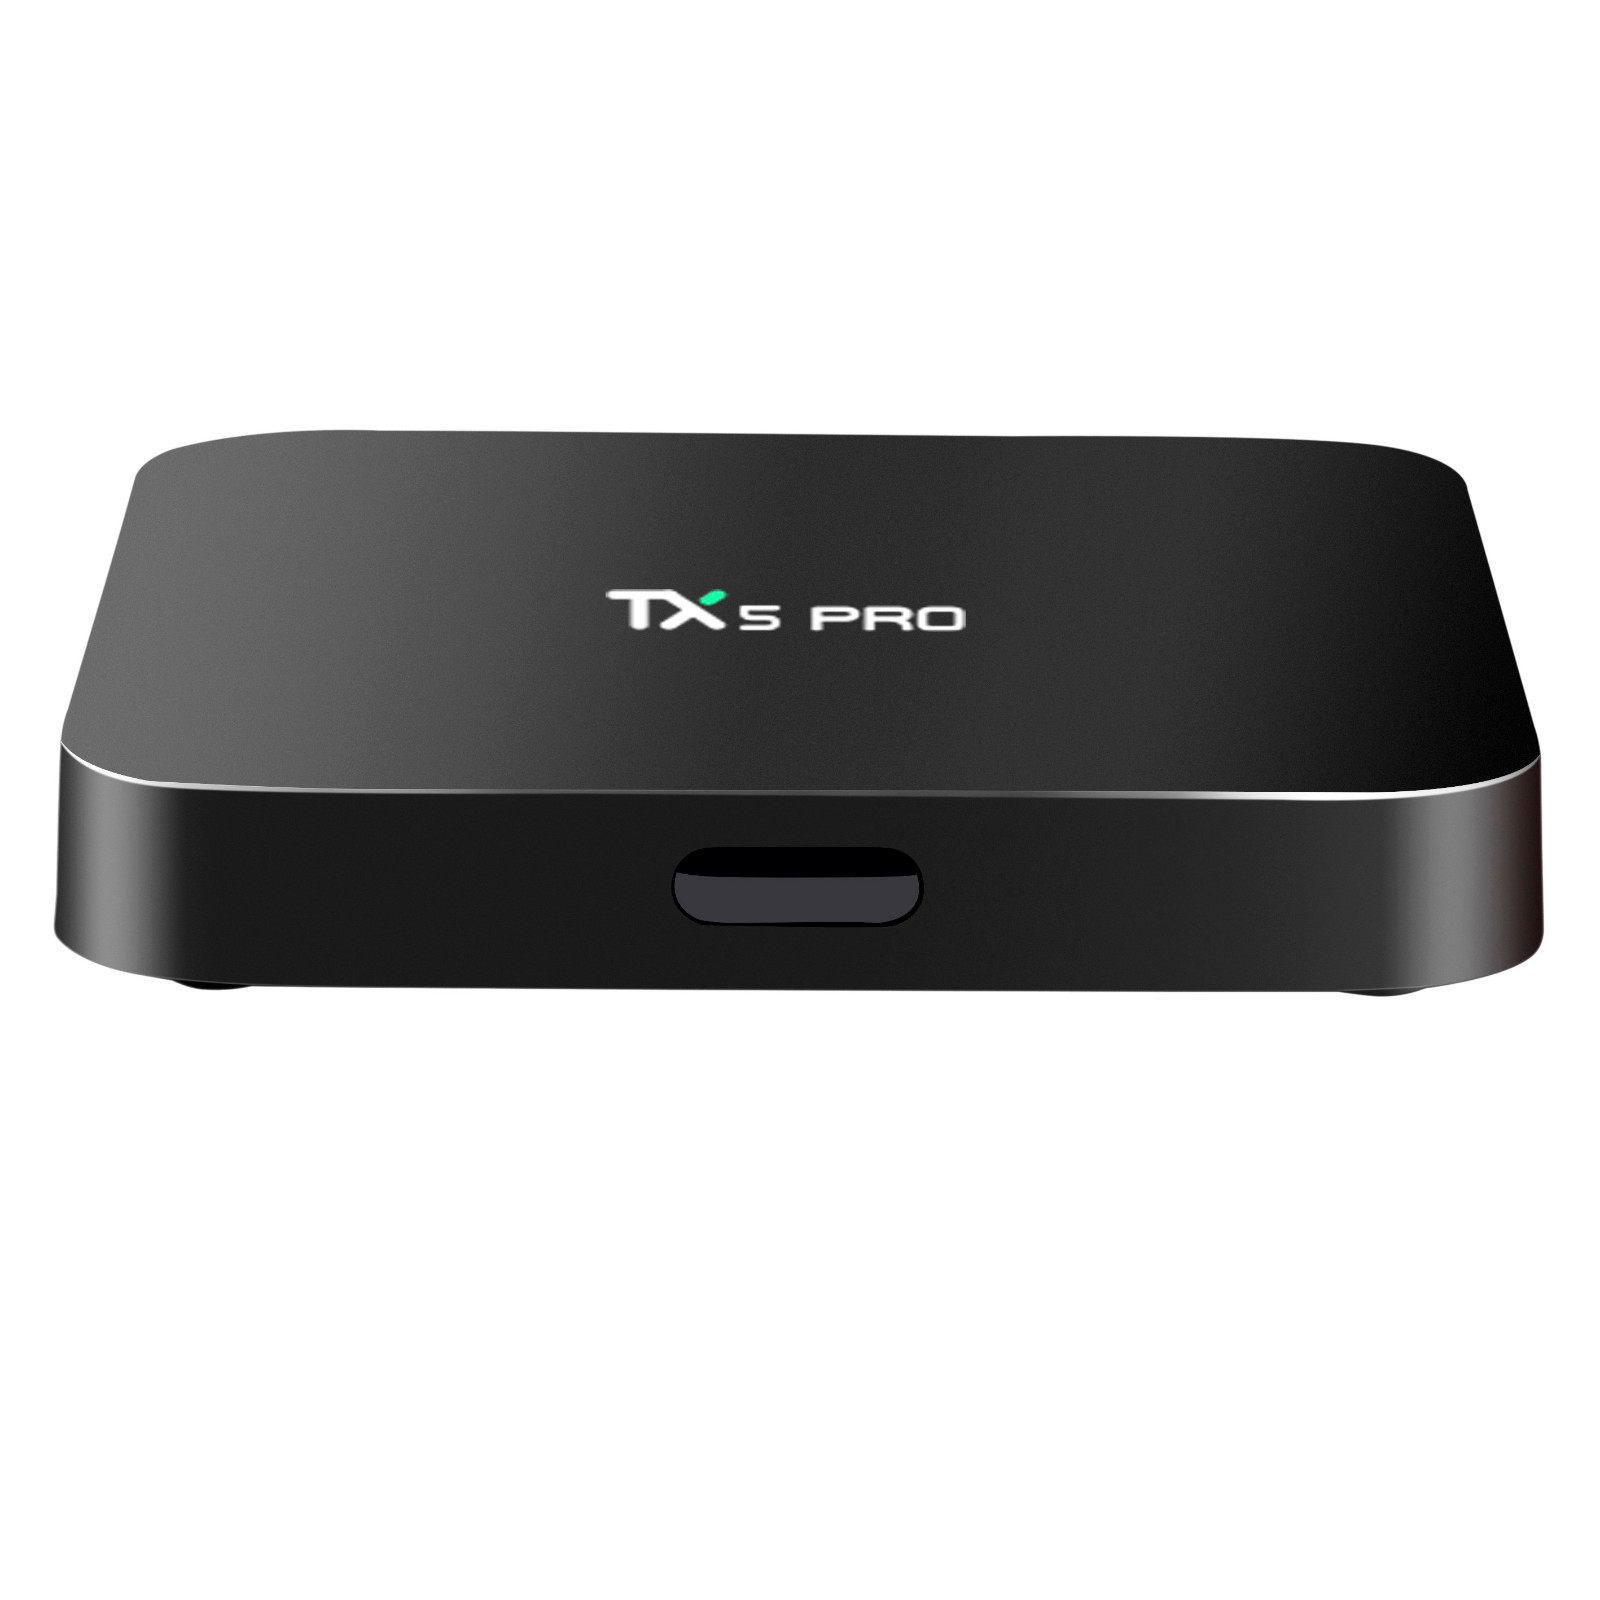 Del TX5 Pro Android TV BOX High 905X Android 6 New Trade Model Network Player tdcx919 Dropship